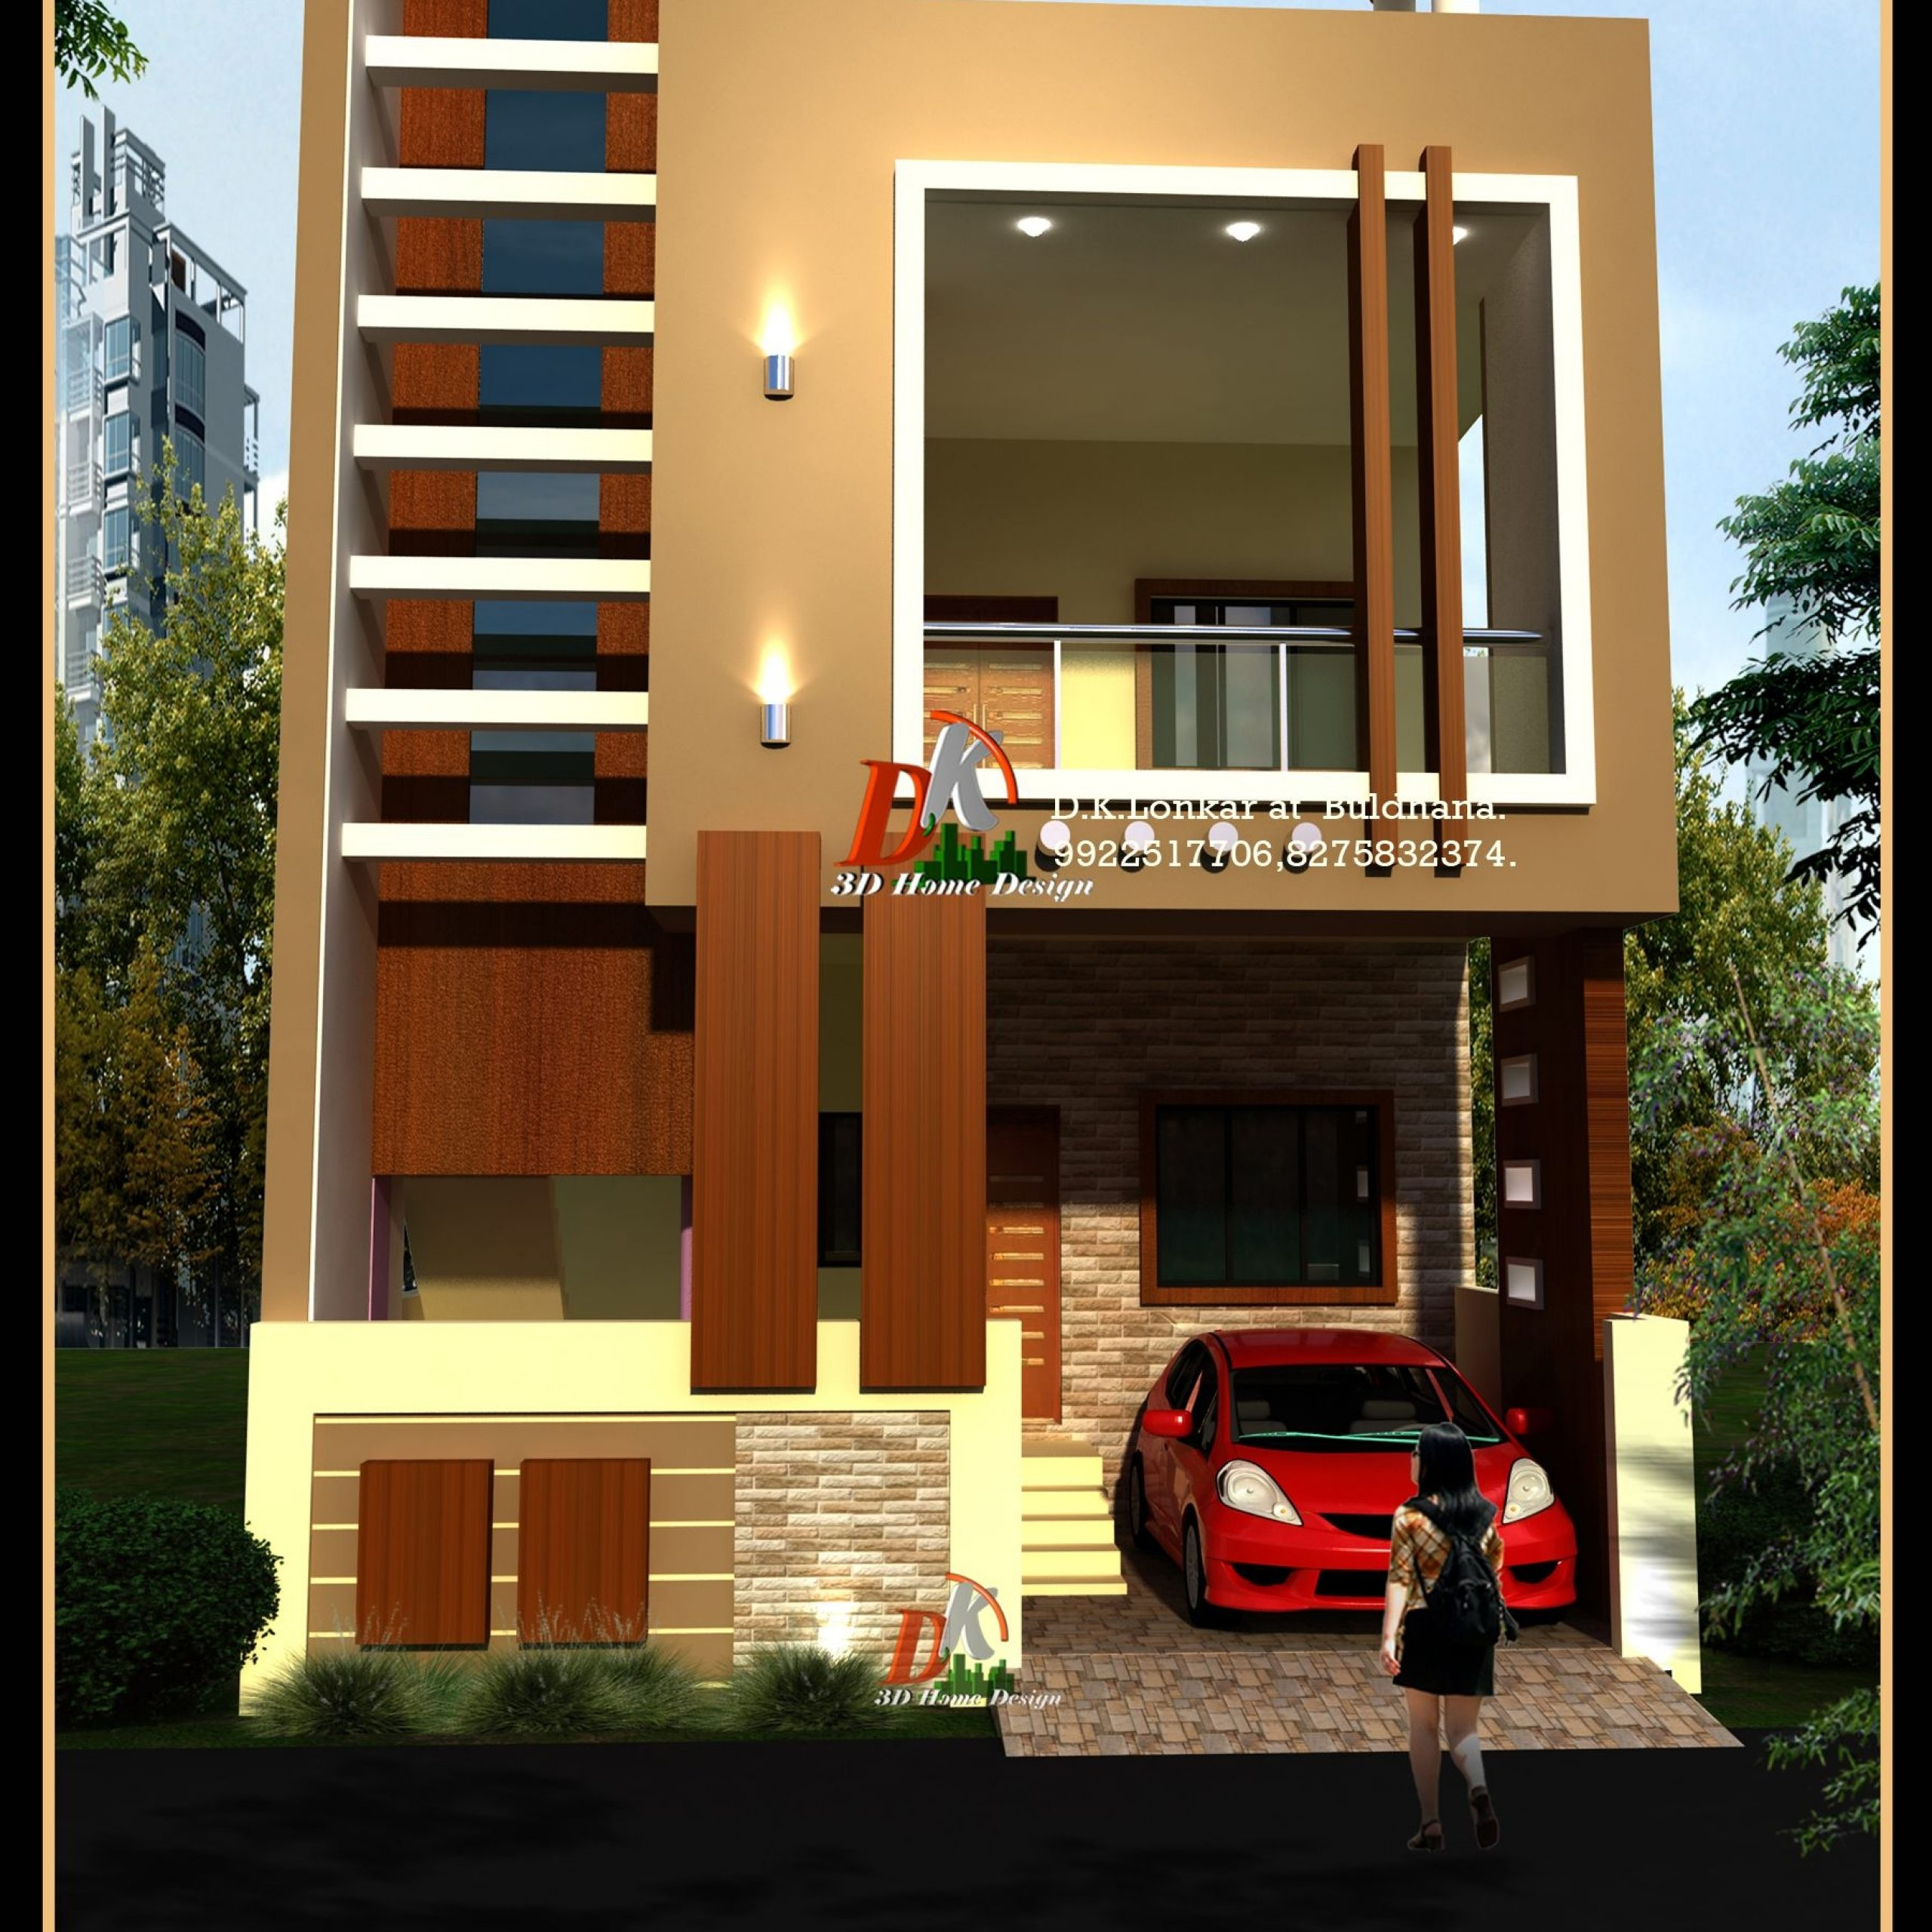 b db ffa f e on Modern House Designs Pictures Gallery id=1005778